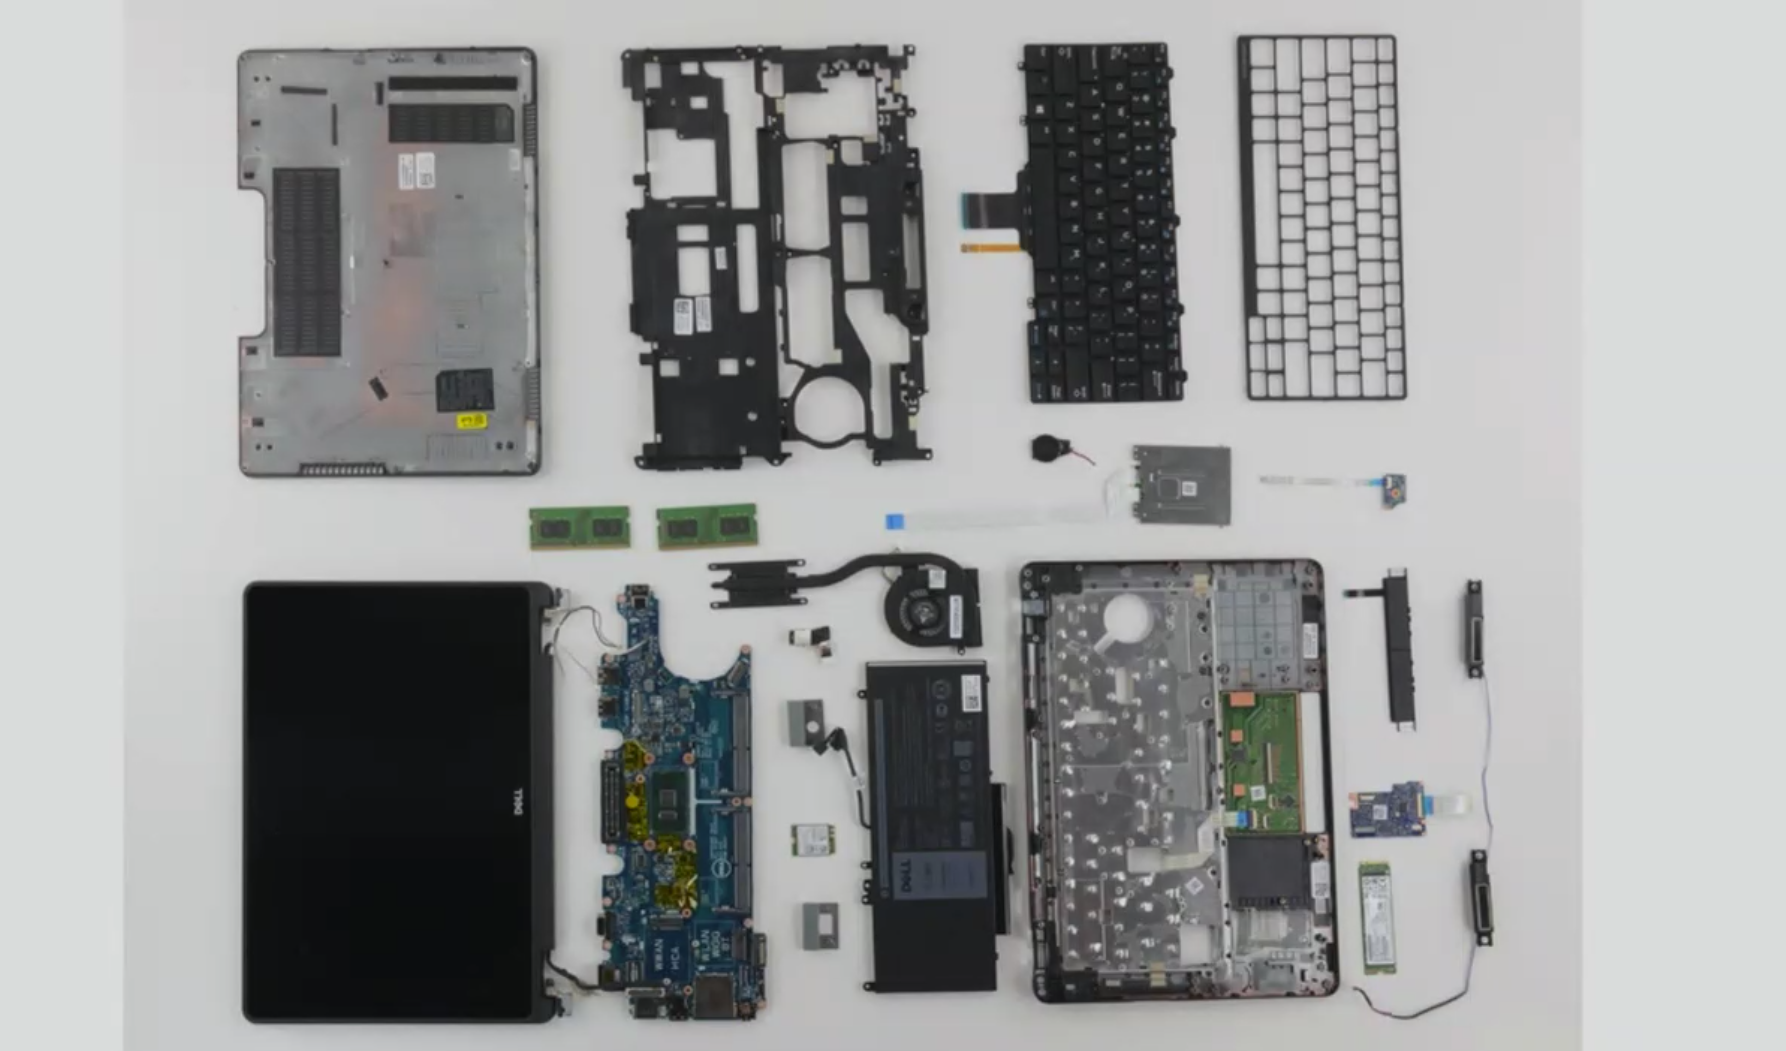 A view from iFixit of the innards of a Dell laptop.